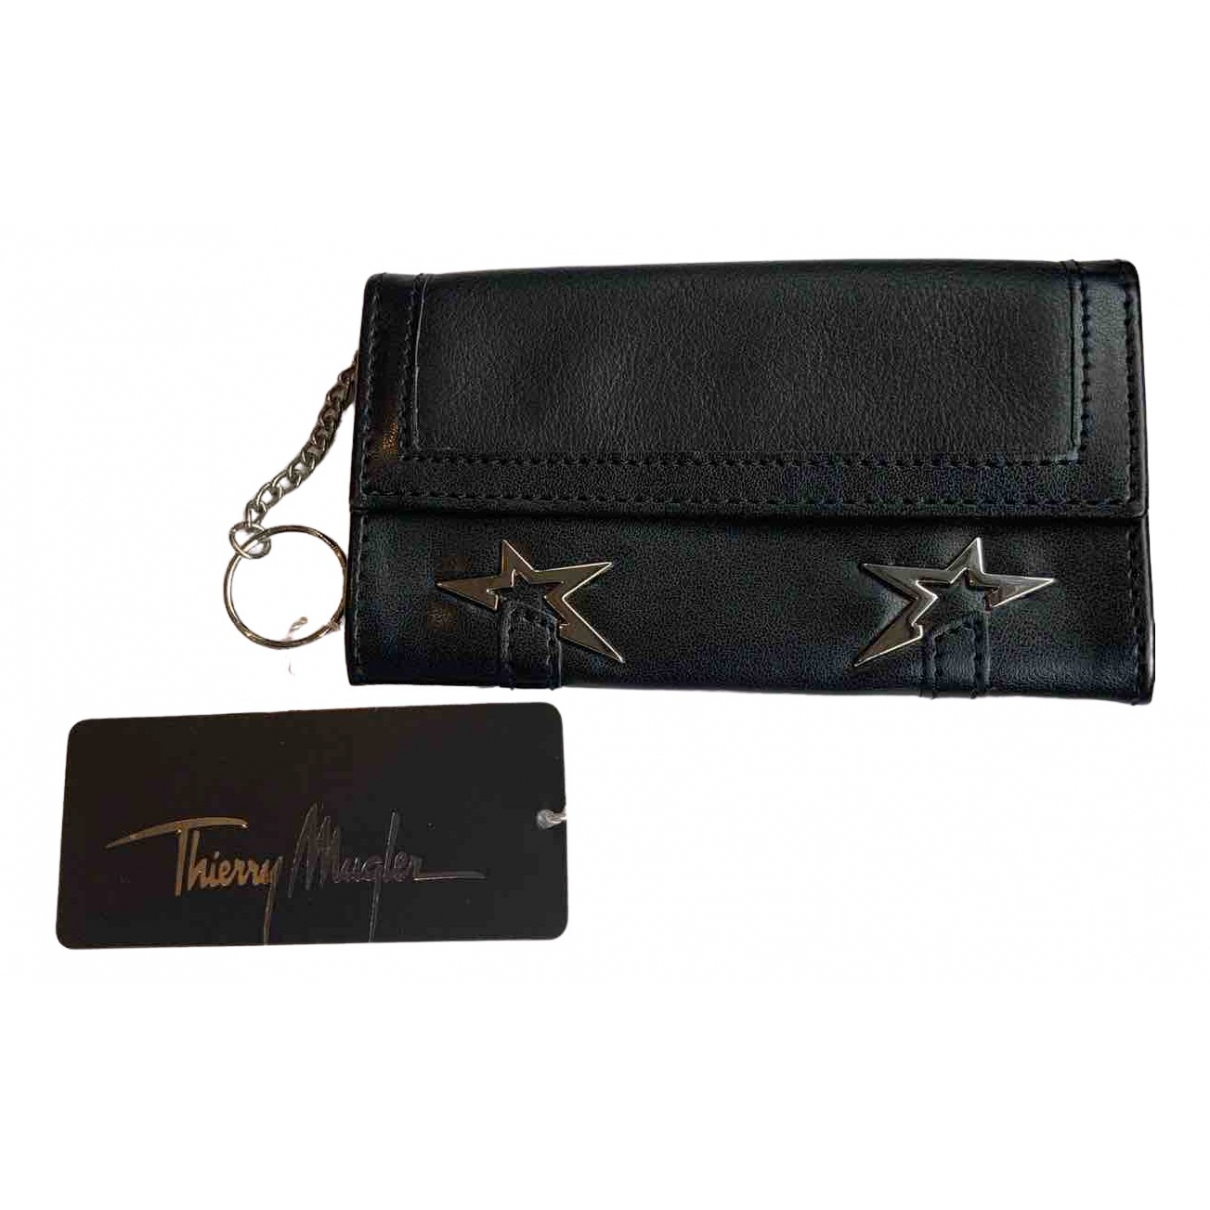 Thierry Mugler N Black Leather wallet for Women N